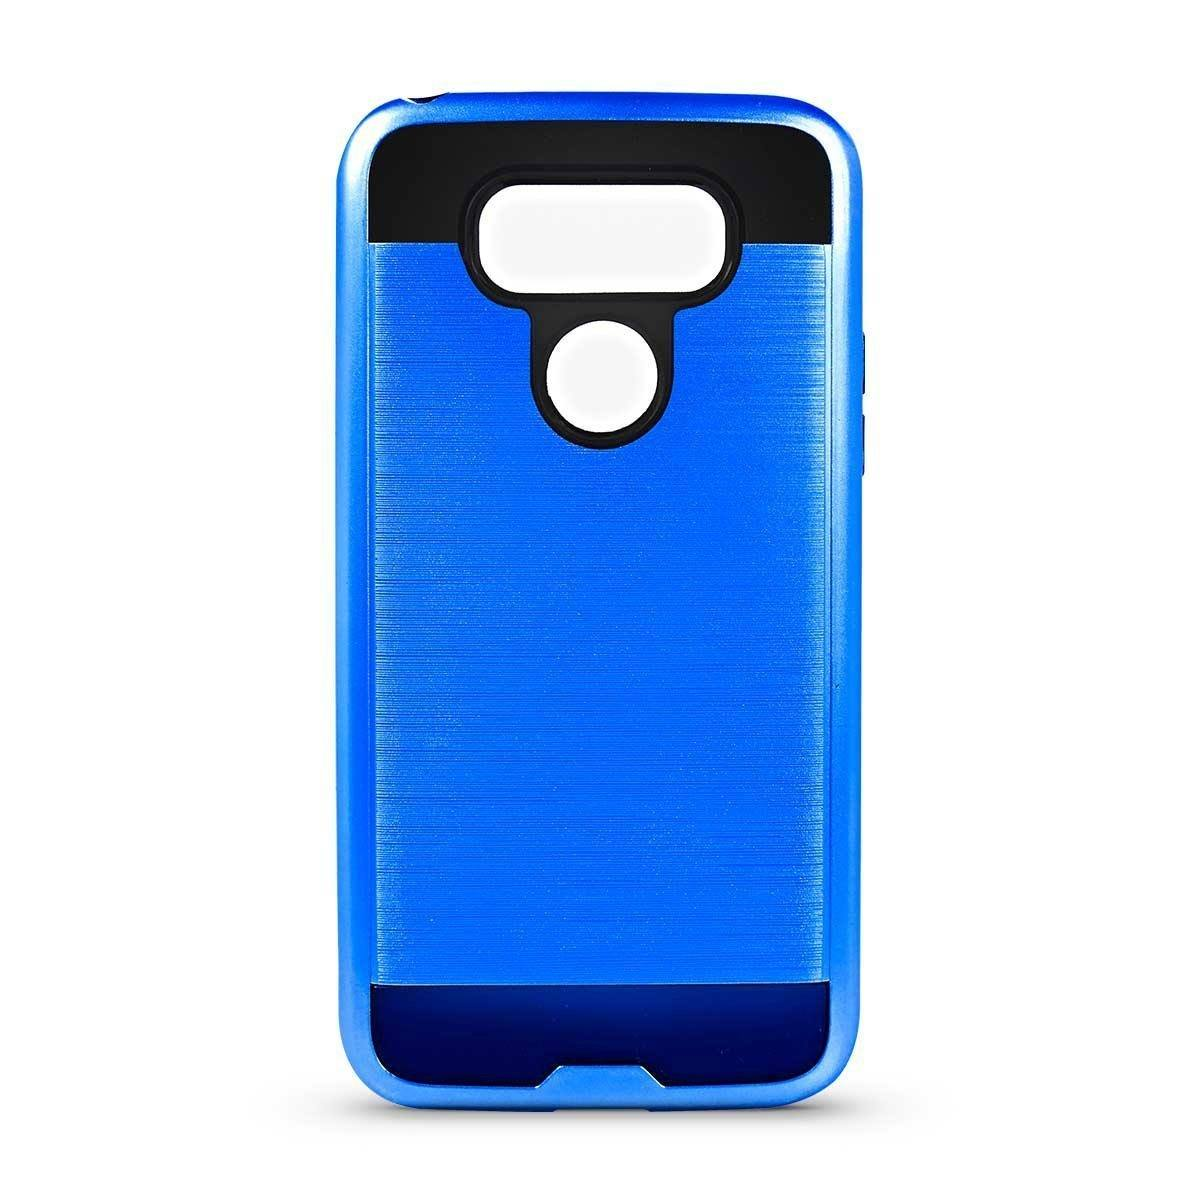 MD Hard Case for LG G6 - Blue